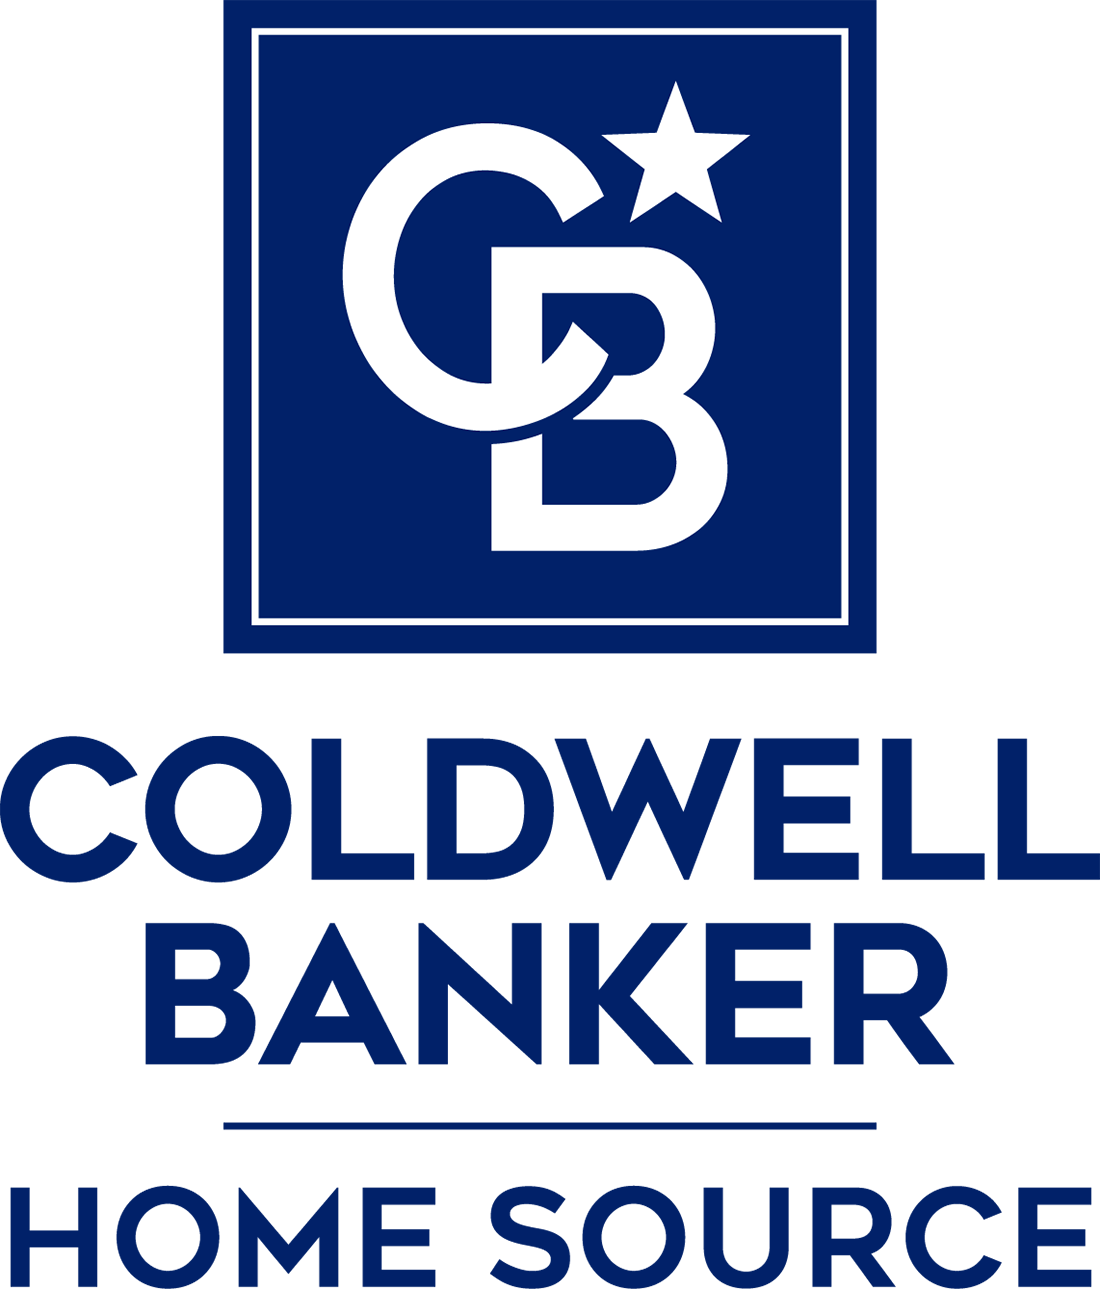 April Love - Coldwell Banker Home Source Logo